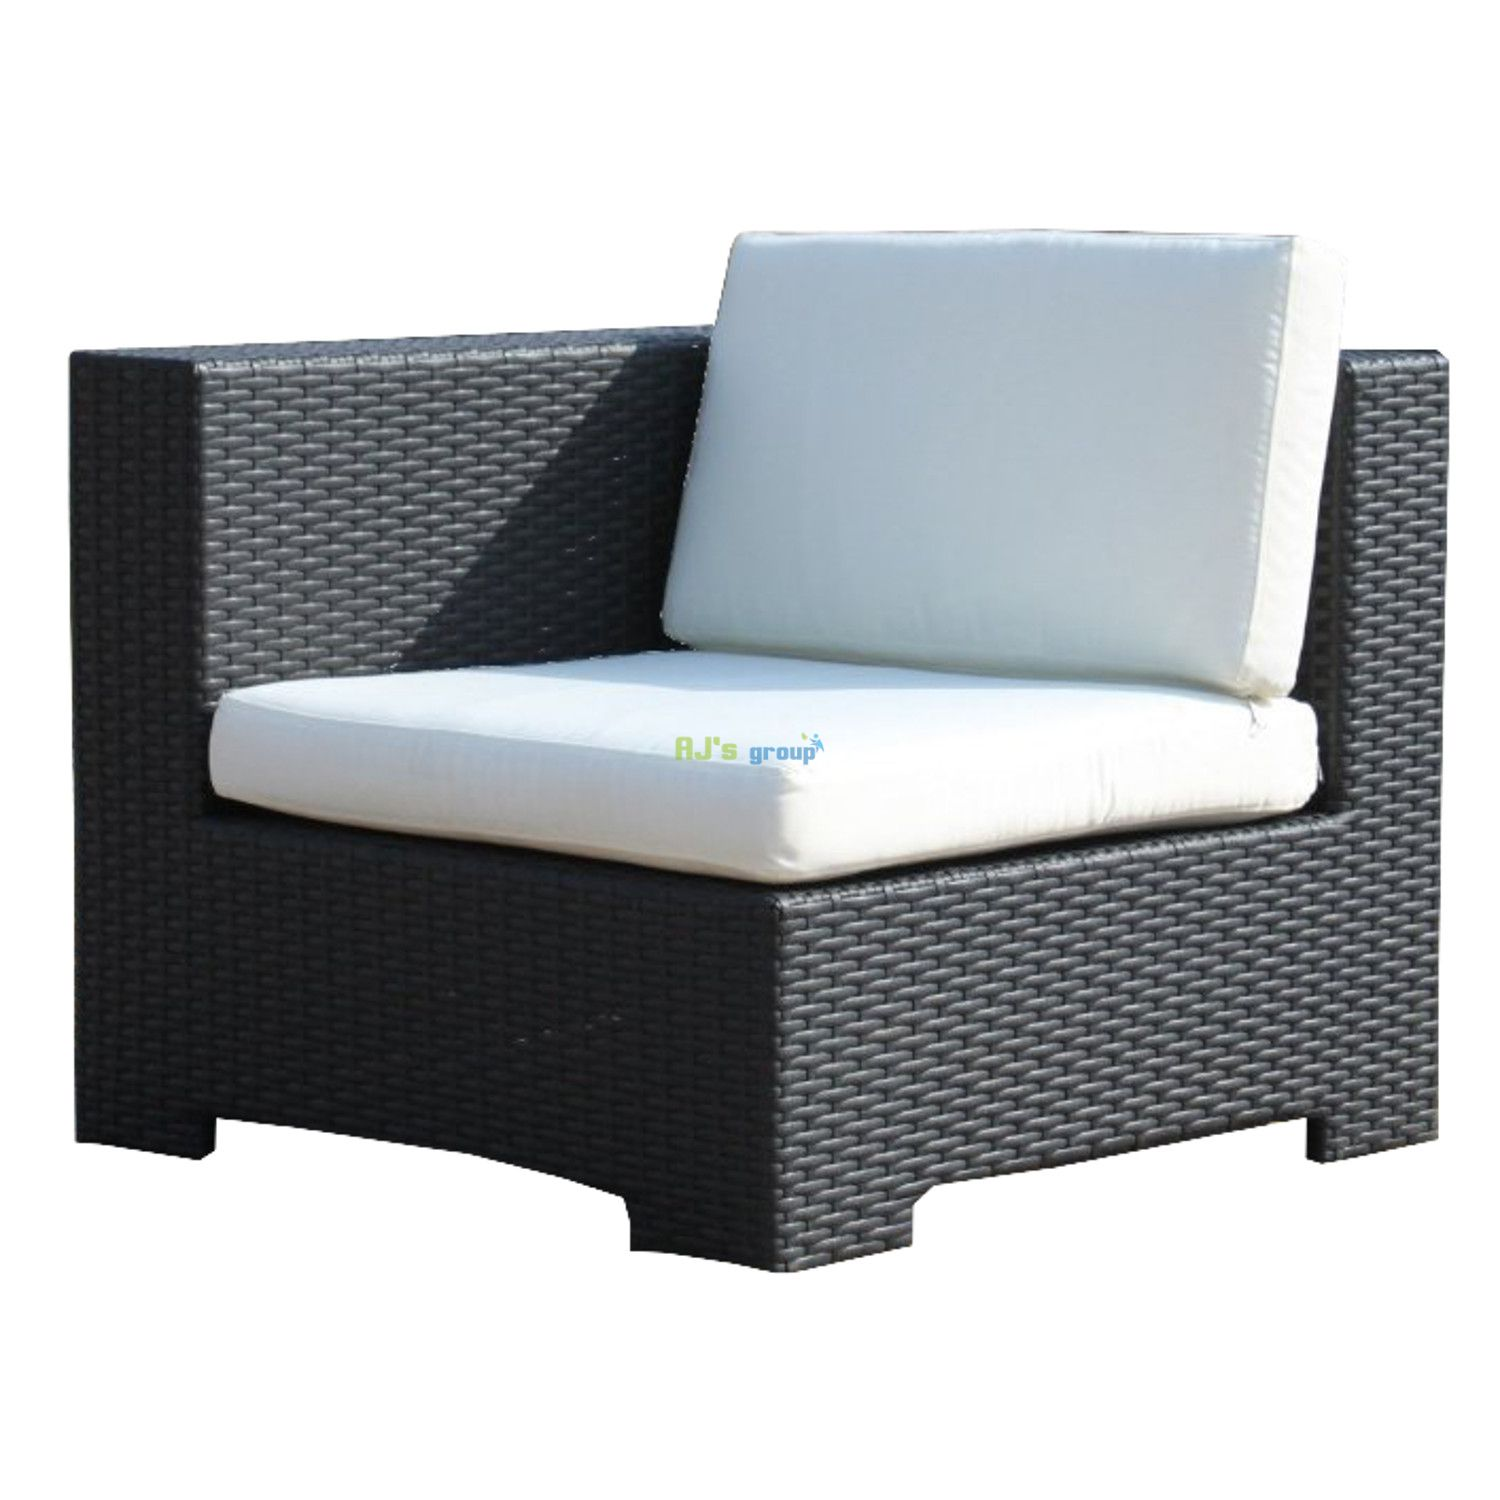 Rattan Gartenmöbel Lounge Günstig ~ Rattan Wicker Garden Patio Set Los Angeles black